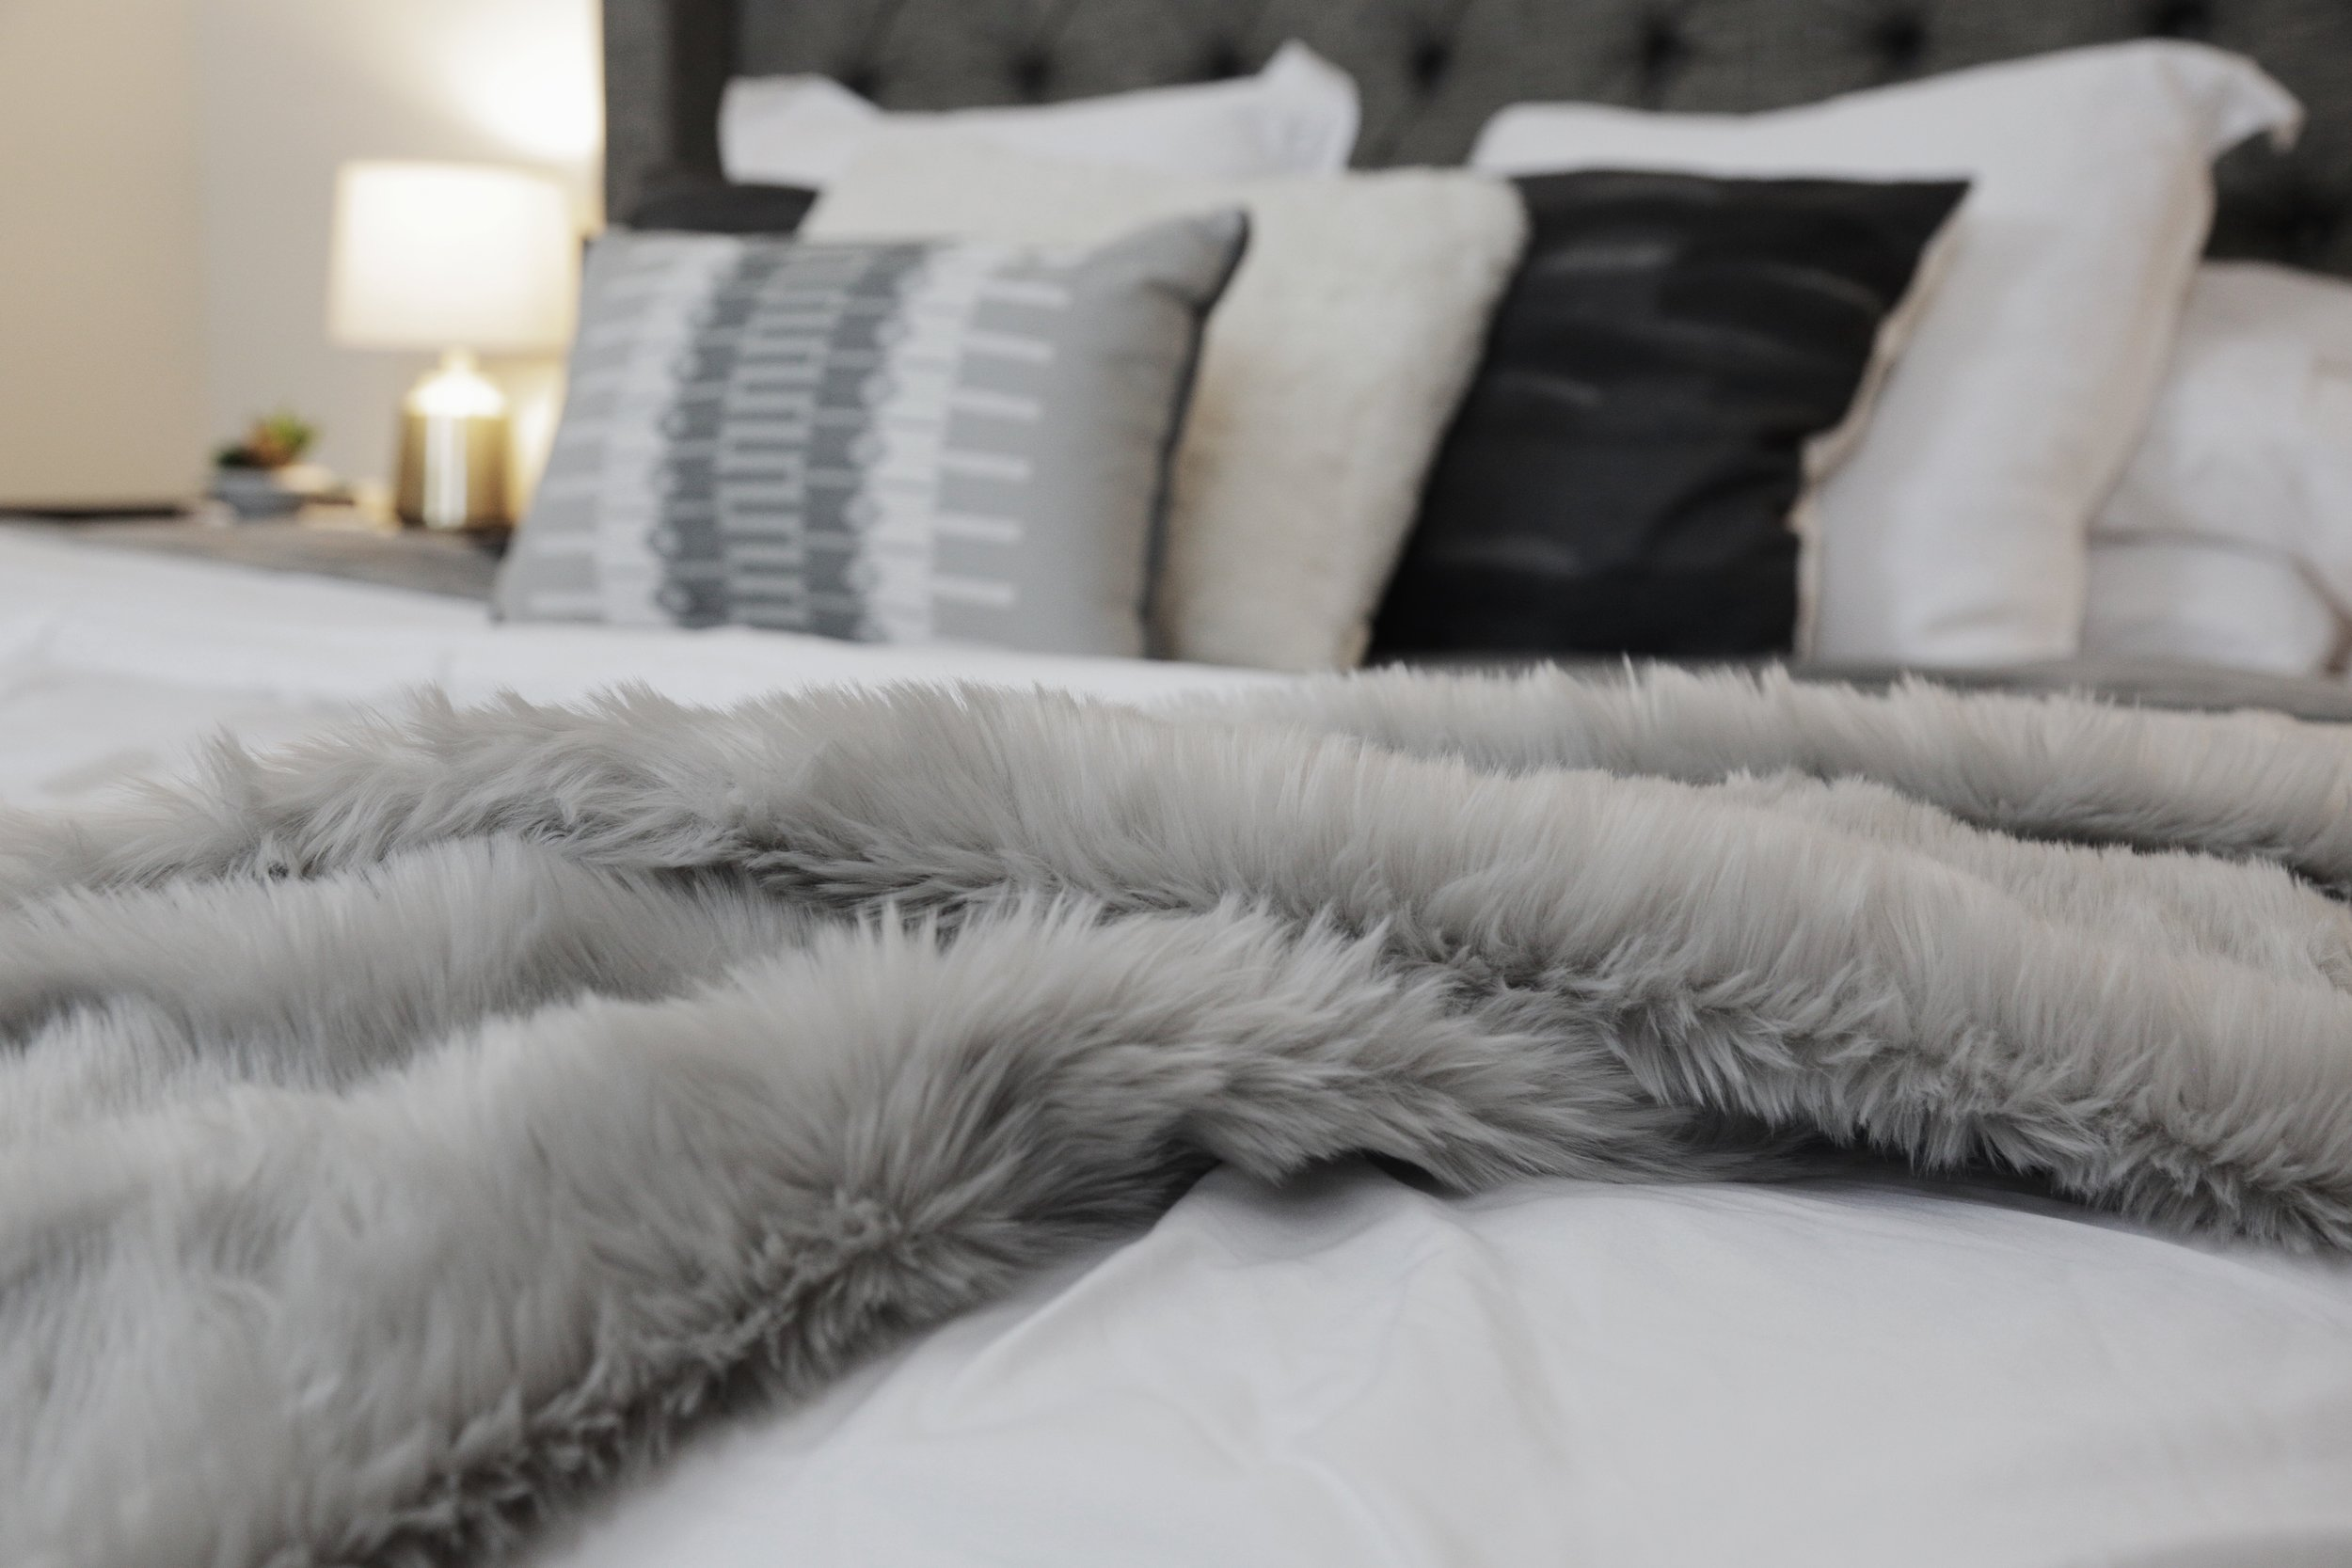 How to: Style Your Bed - kristenmcgowan.com